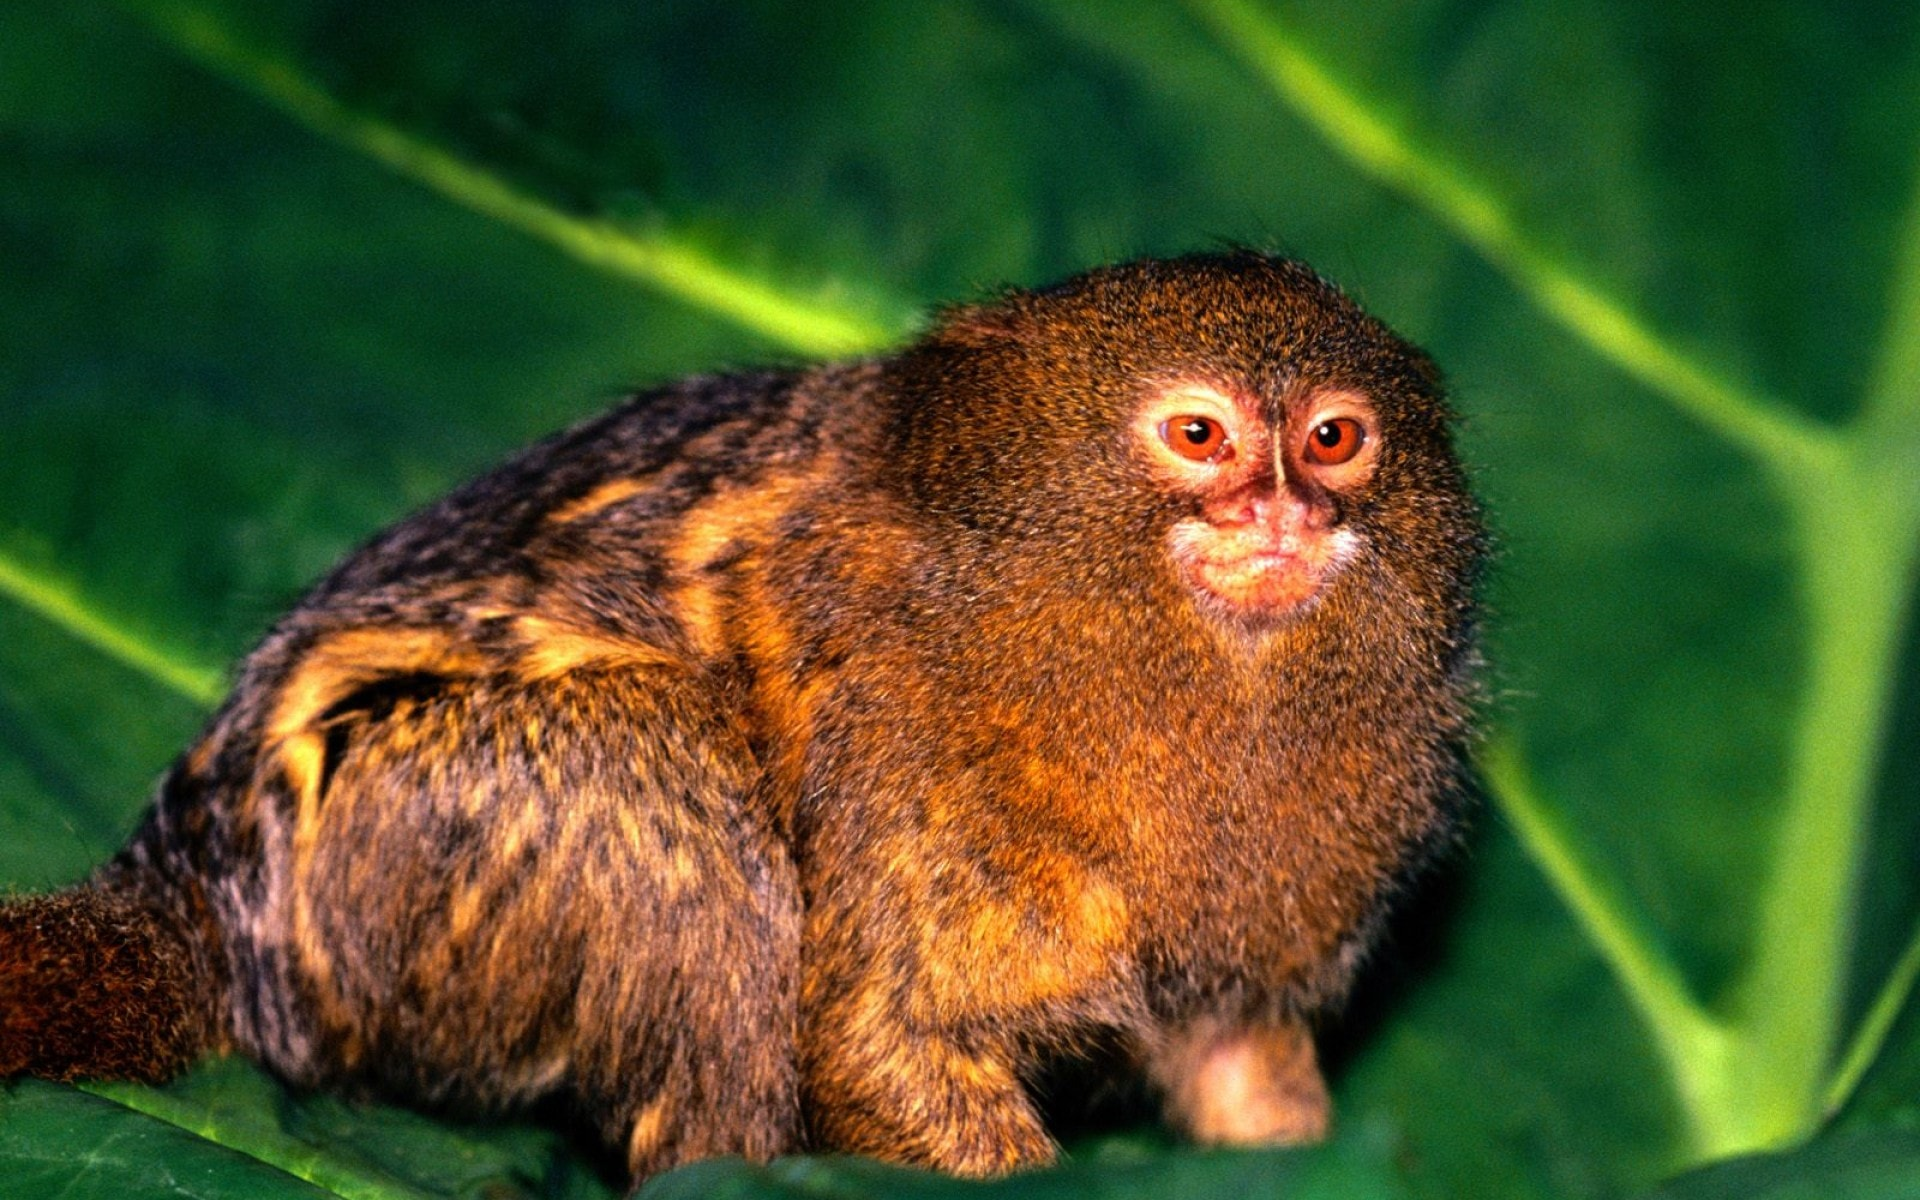 Marmoset monkey widescreen wallpapers